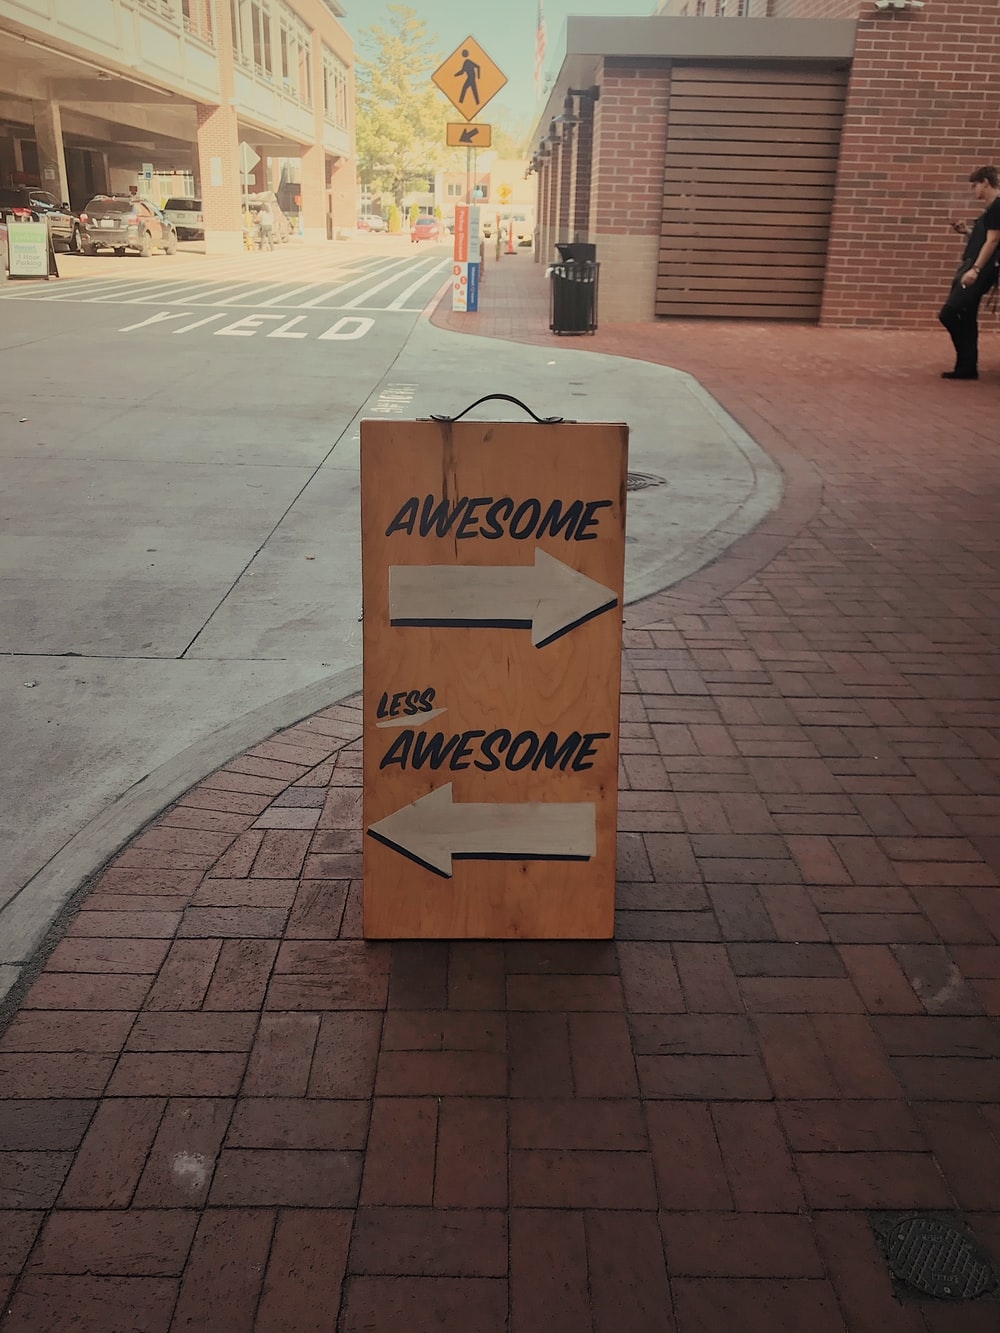 yellow Awesome-printed signage